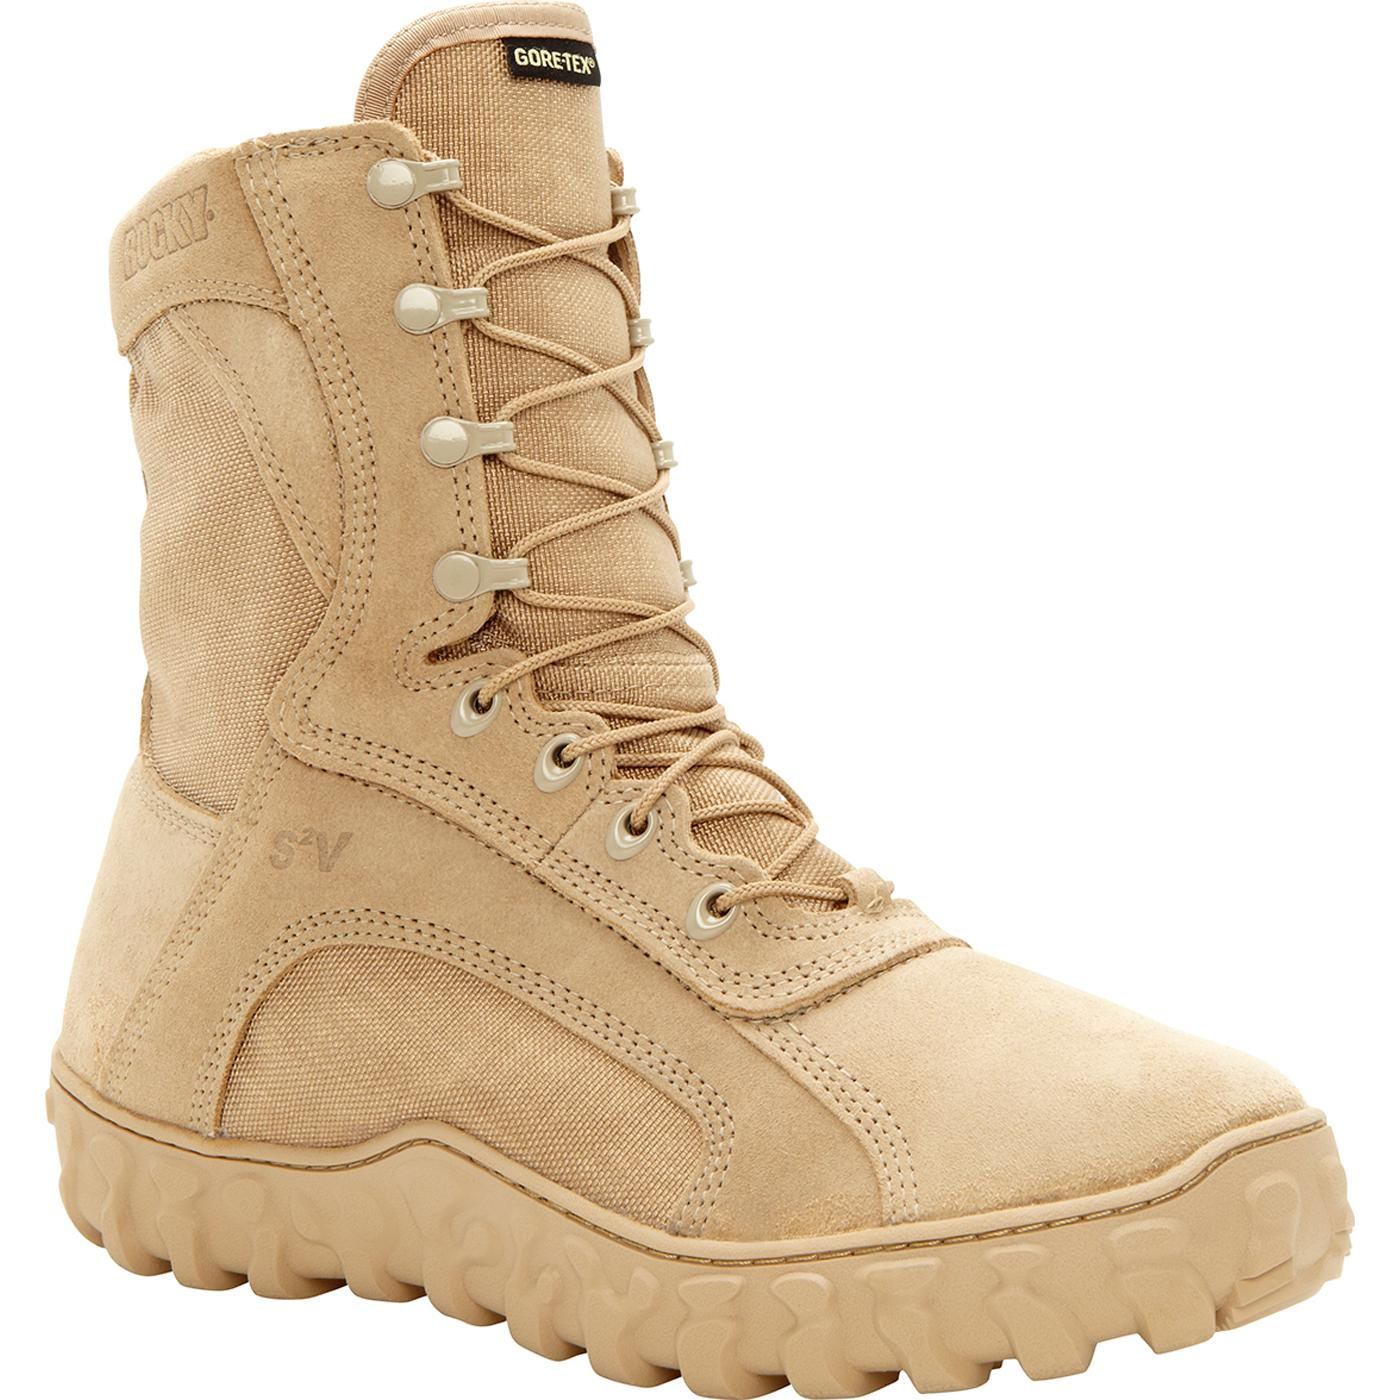 0494a2693c50 Rocky S2V GORE-TEX® Waterproof 400G Insulated Tactical Military Boot